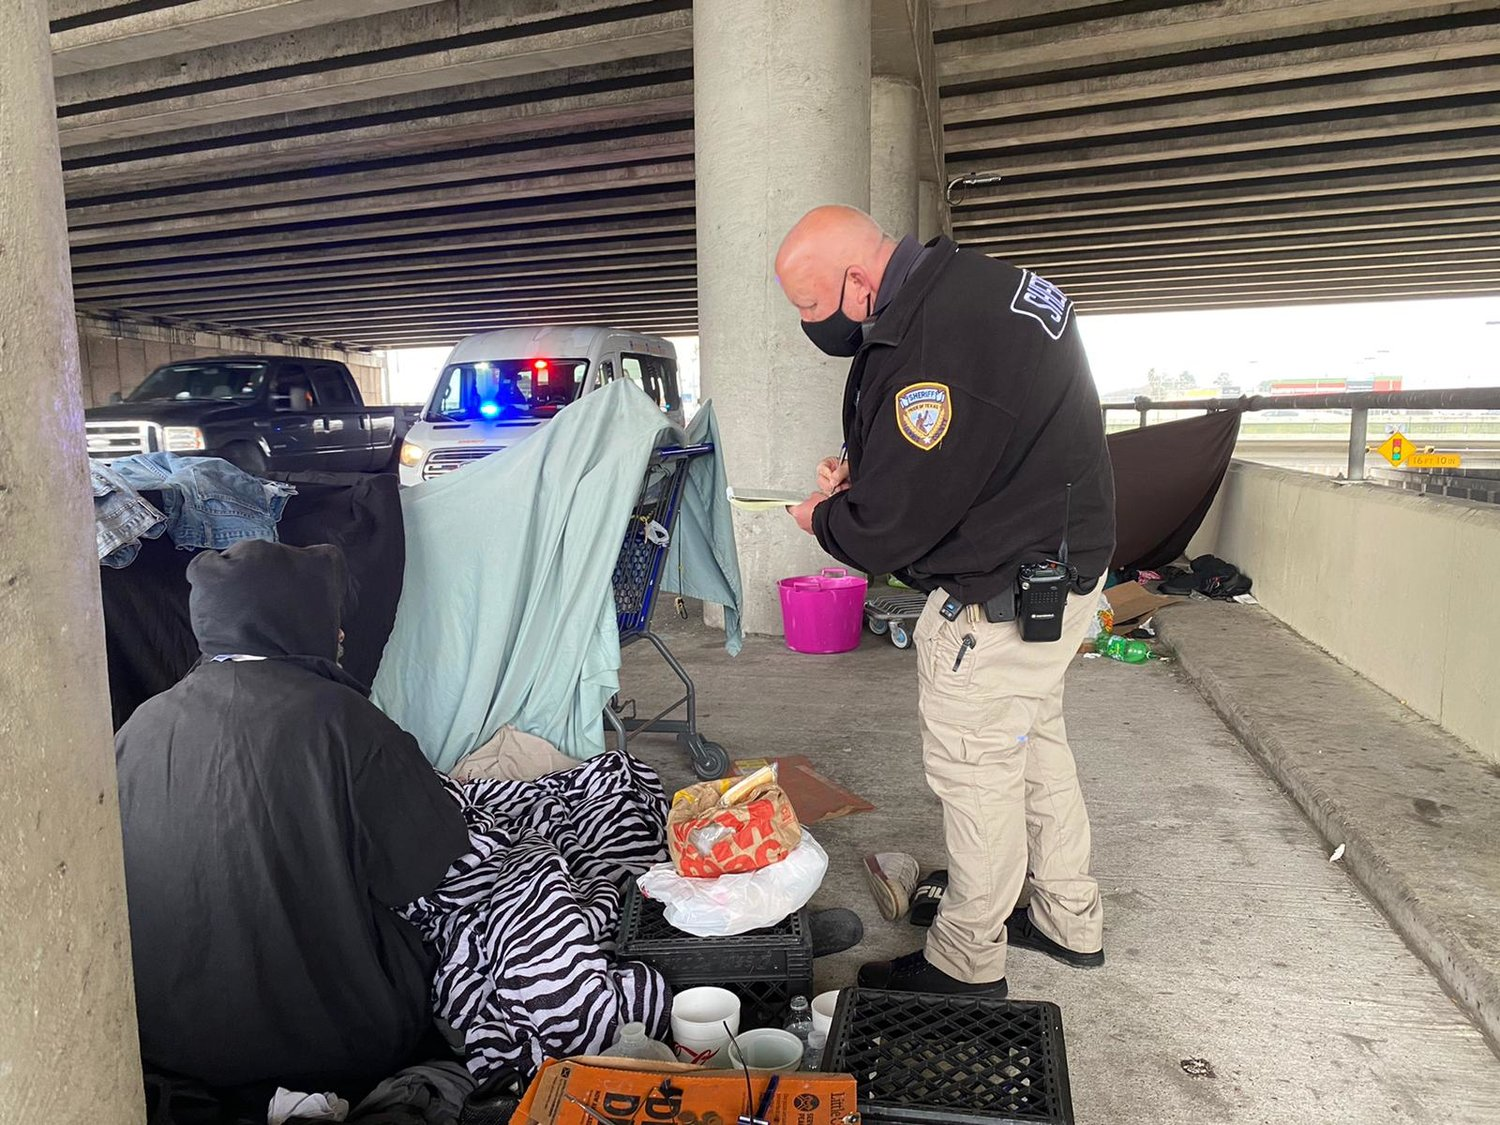 Harris County Sheriff's Office deputies reached out to the homeless ahead of Winter Storm Uri and during to assist them in seeking shelter from the sub-freezing temperatures.